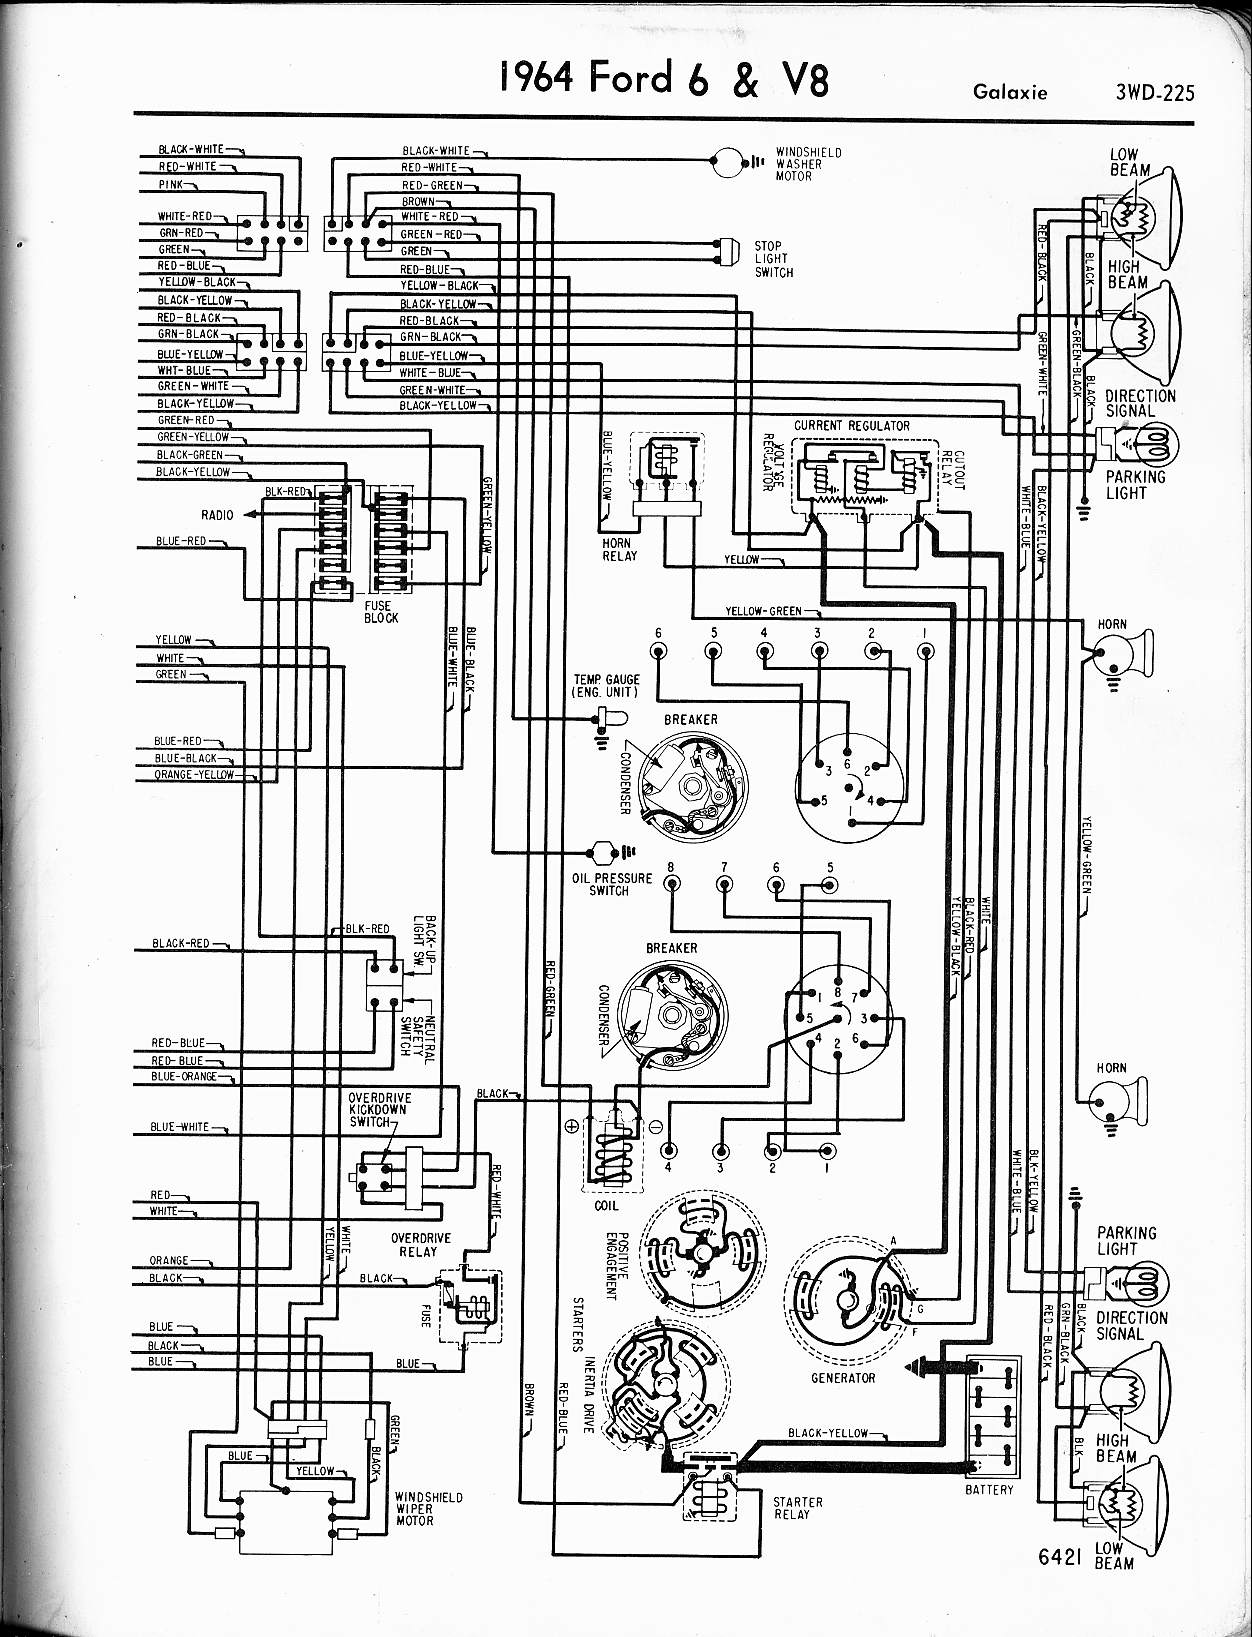 MWire5765 225 57 65 ford wiring diagrams Ford E 350 Wiring Diagrams at couponss.co